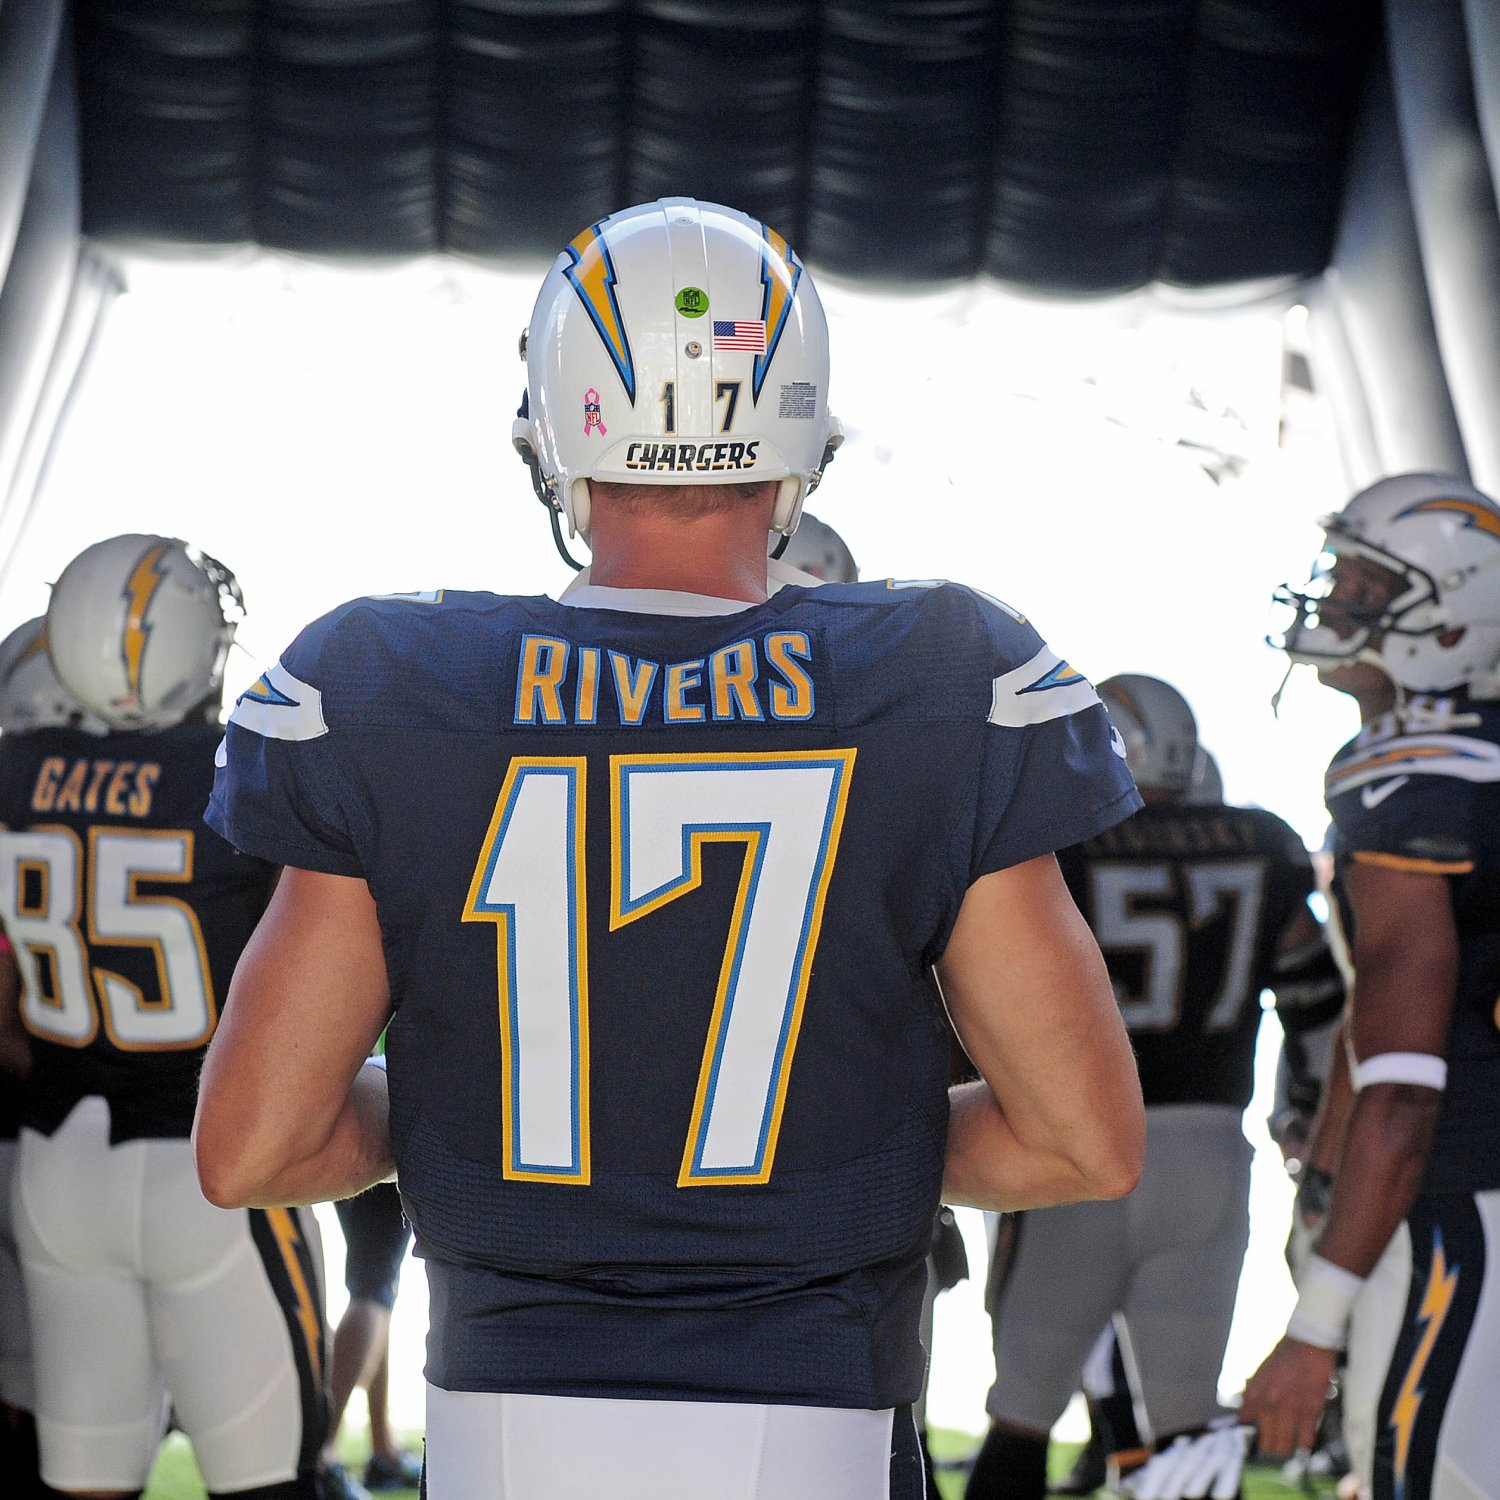 San Diego Chargers Bye Week 2014: Chargers Vs. Raiders: Live Score And Analysis For San